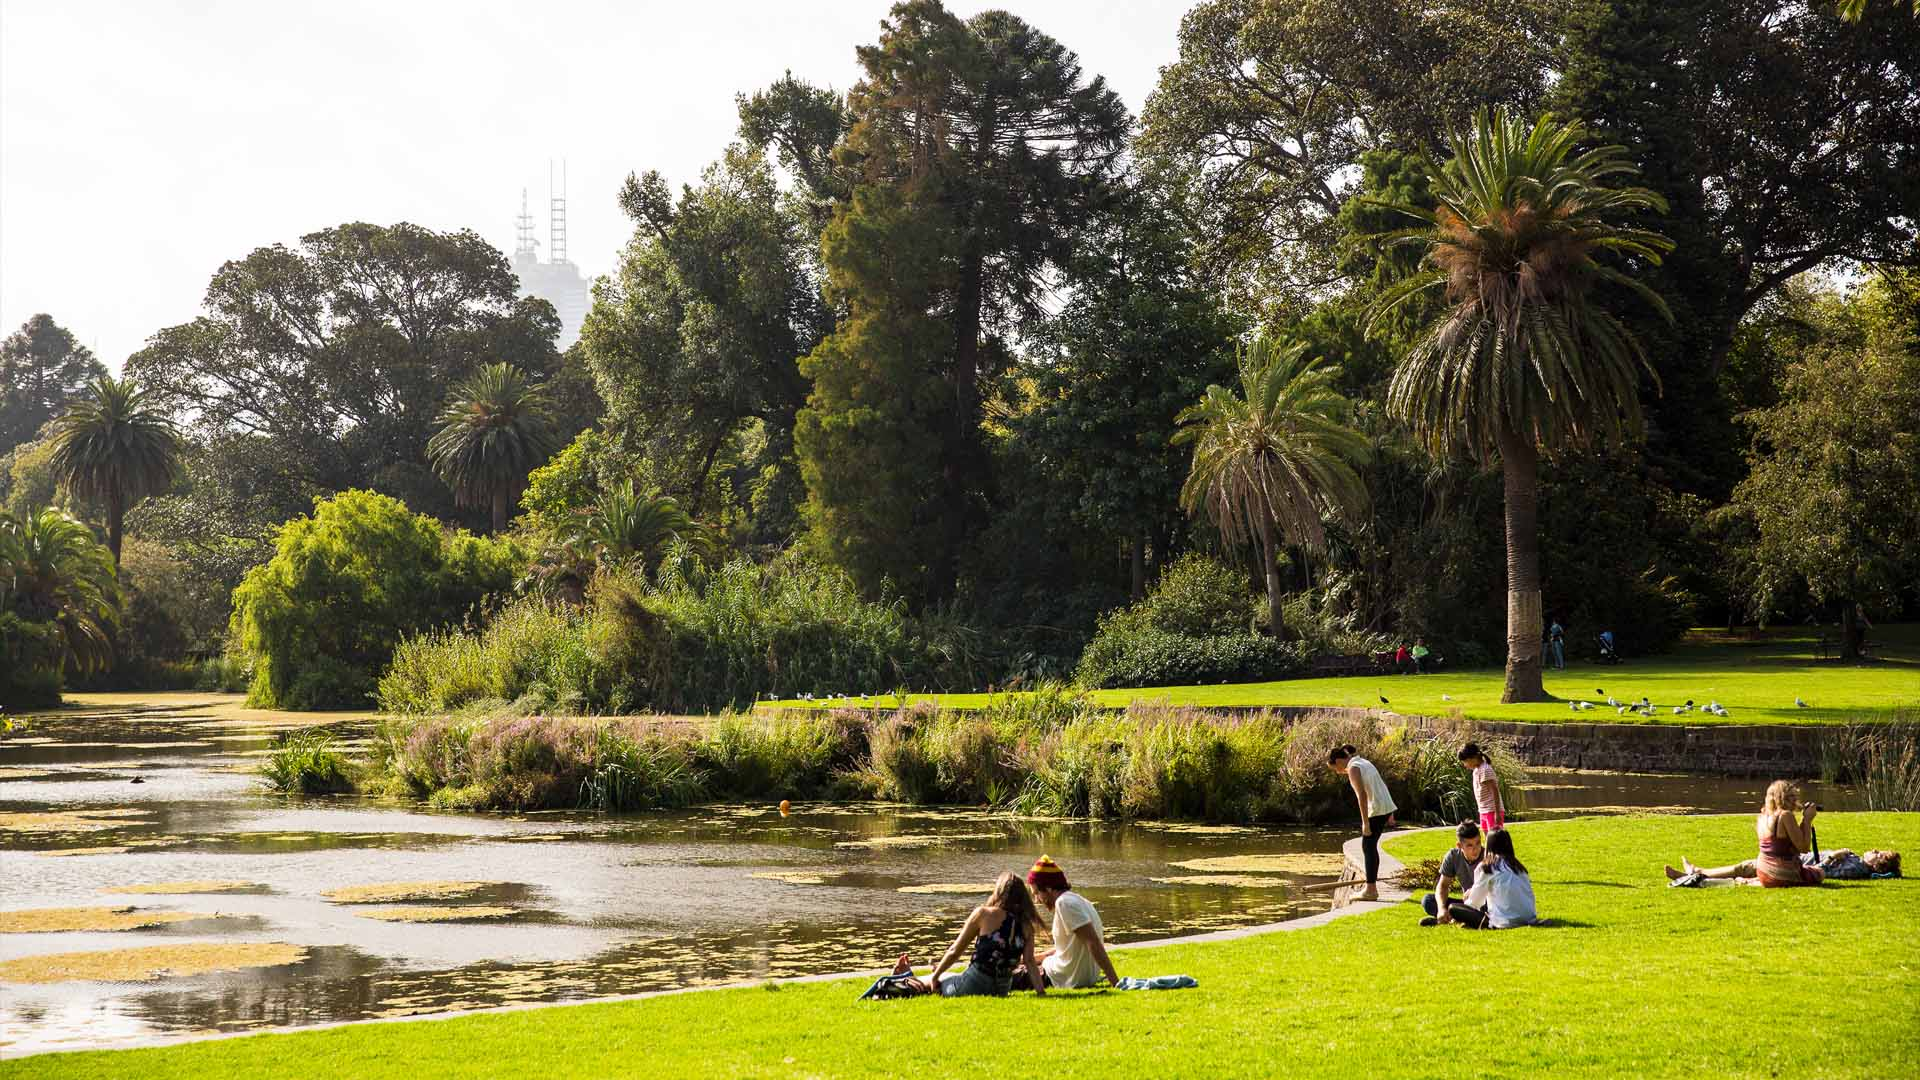 Melburnians Can Travel 15 Kilometres and Enjoy More Outdoor Activities From September 28